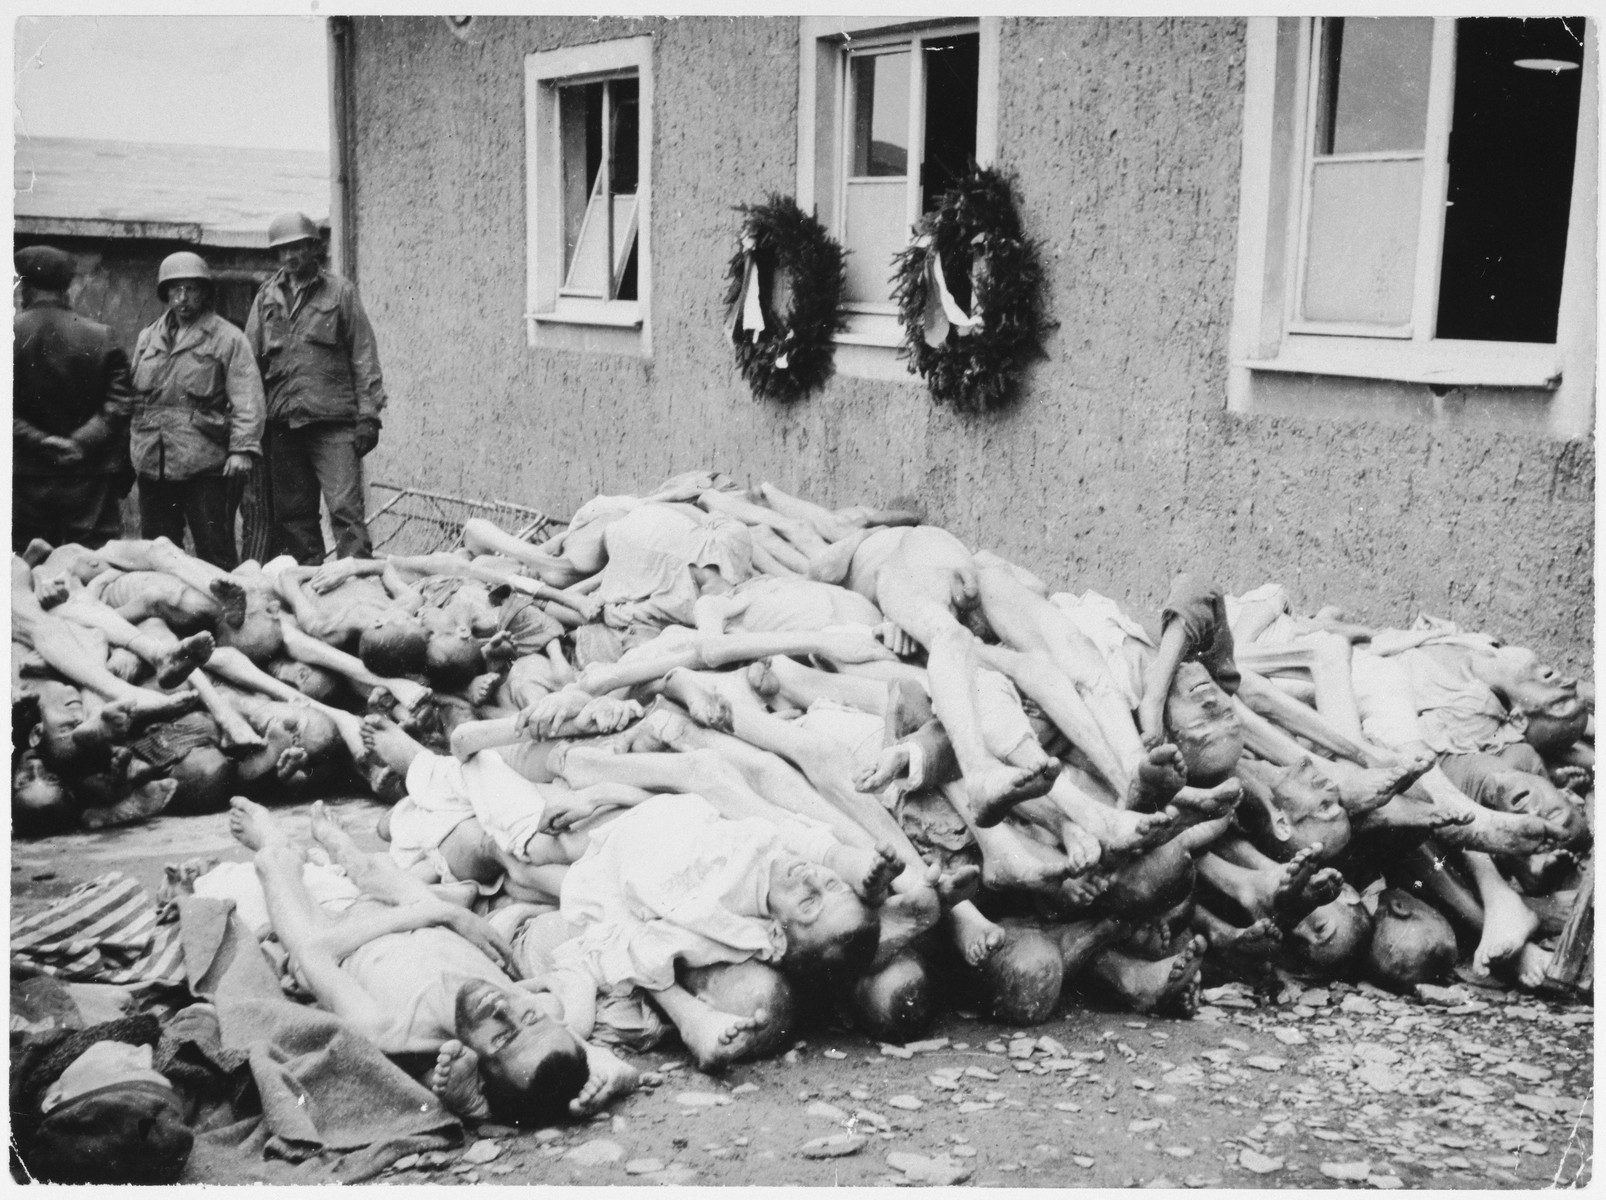 Two American soldier look at the piles of bodies stacked up behind the crematorium in Buchenwald.